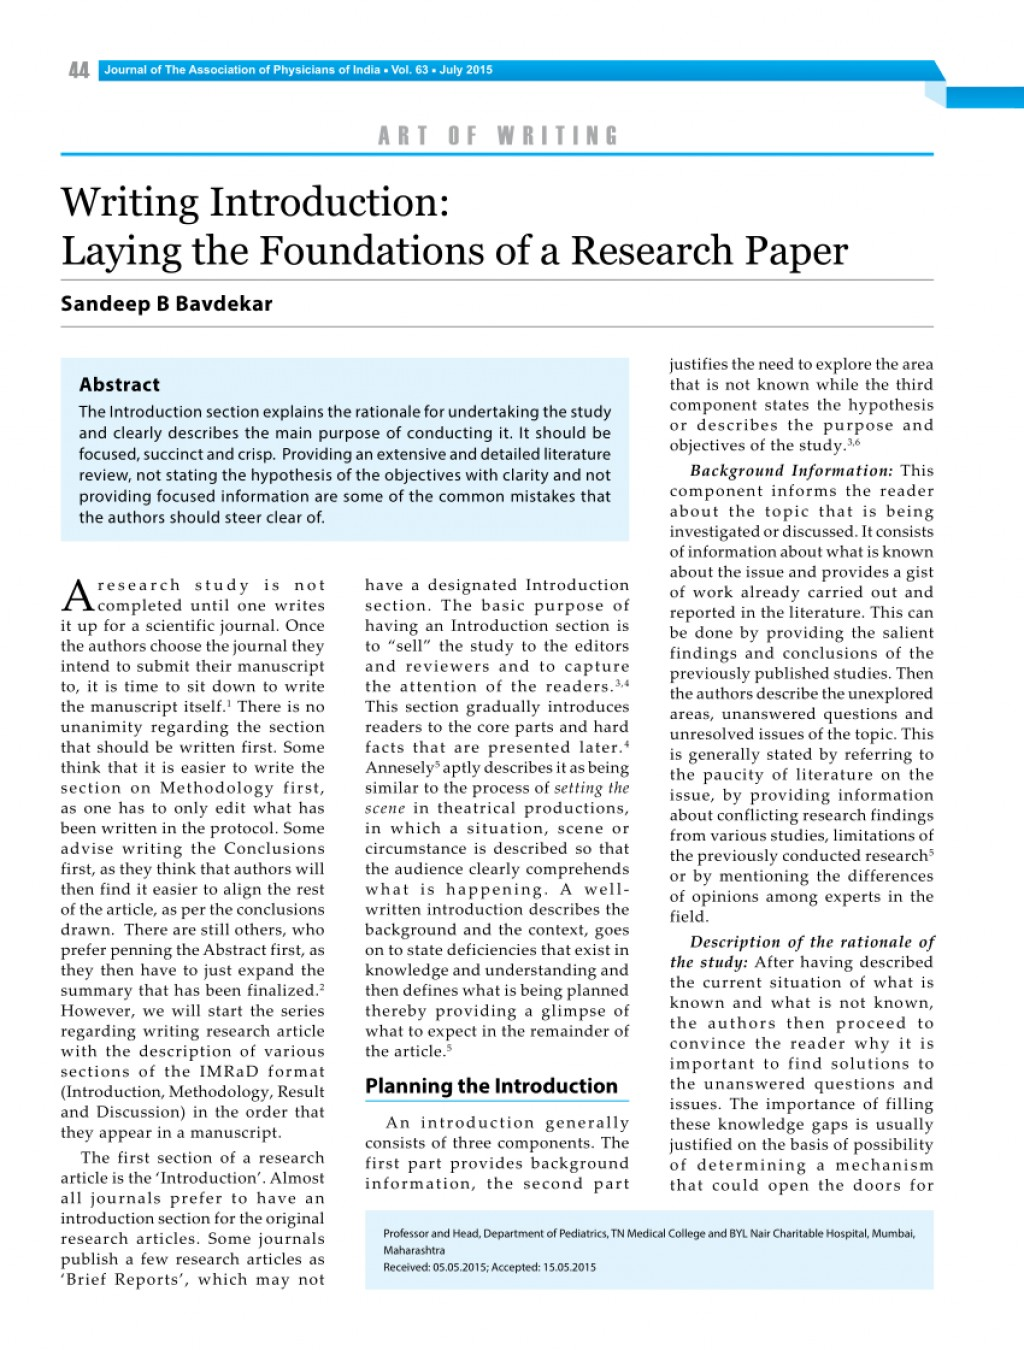 004 Largepreview Research Paper Writingn Introduction To Top Writing An A Effective For How Write Powerpoint Ppt Large